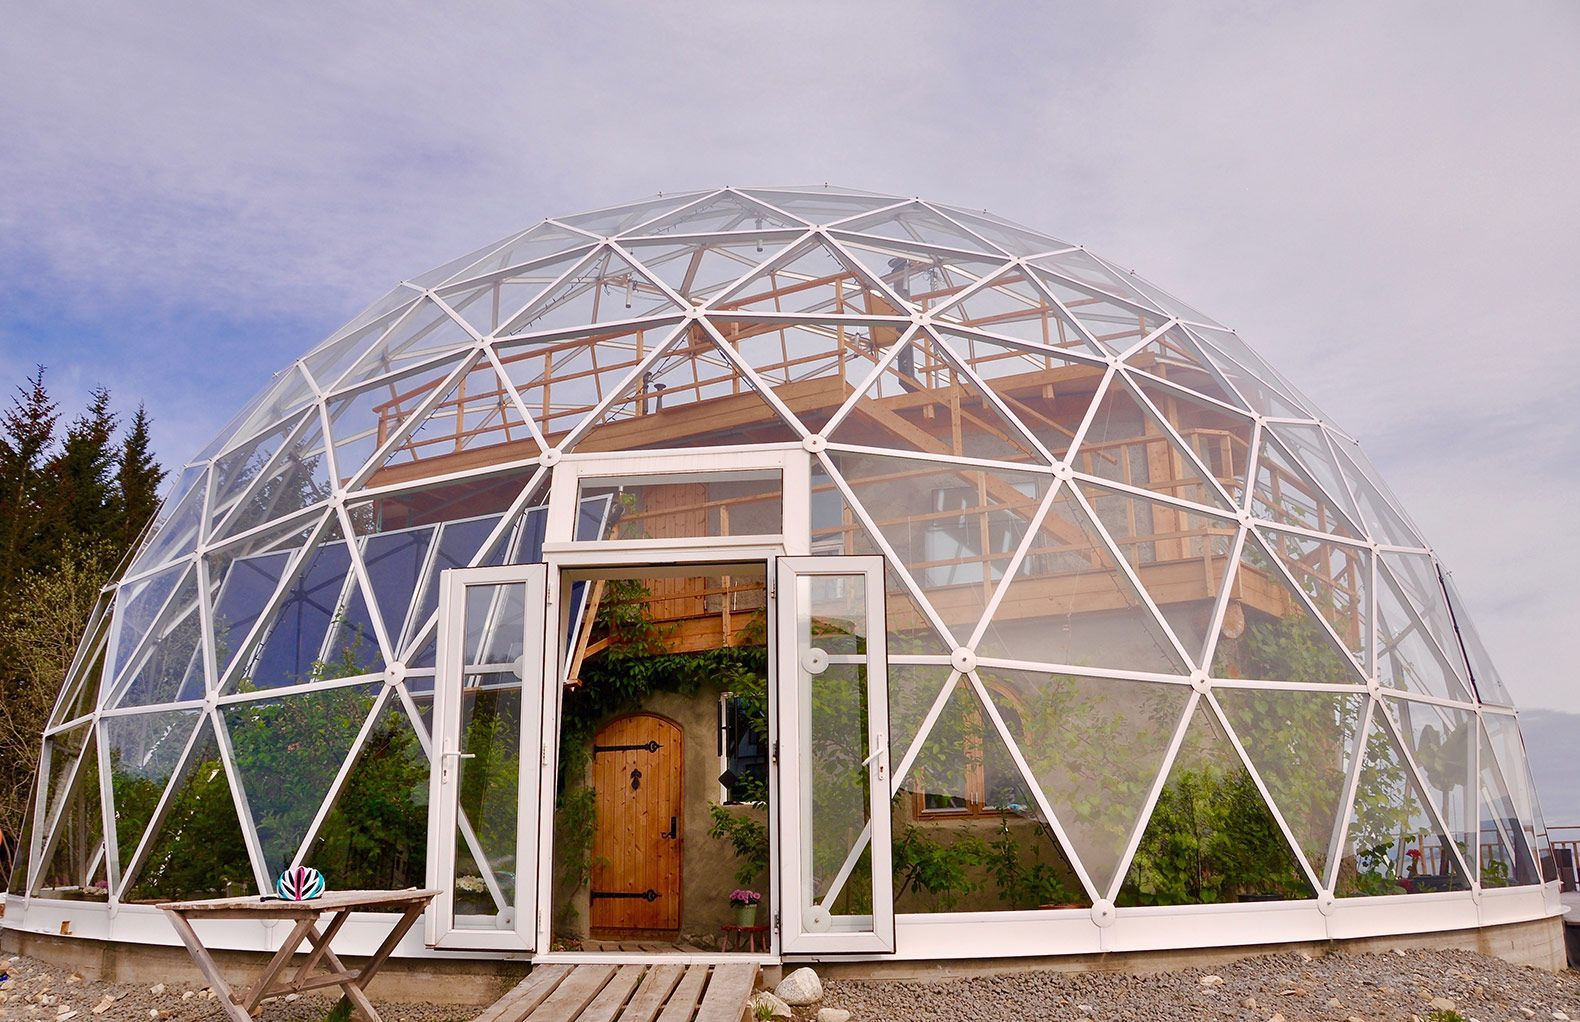 Nature House by Benjamin and Ingrid Hjertefølger is a solar geodesic dome, a corn cob house, on Sandhornoya Island of northern Norway.